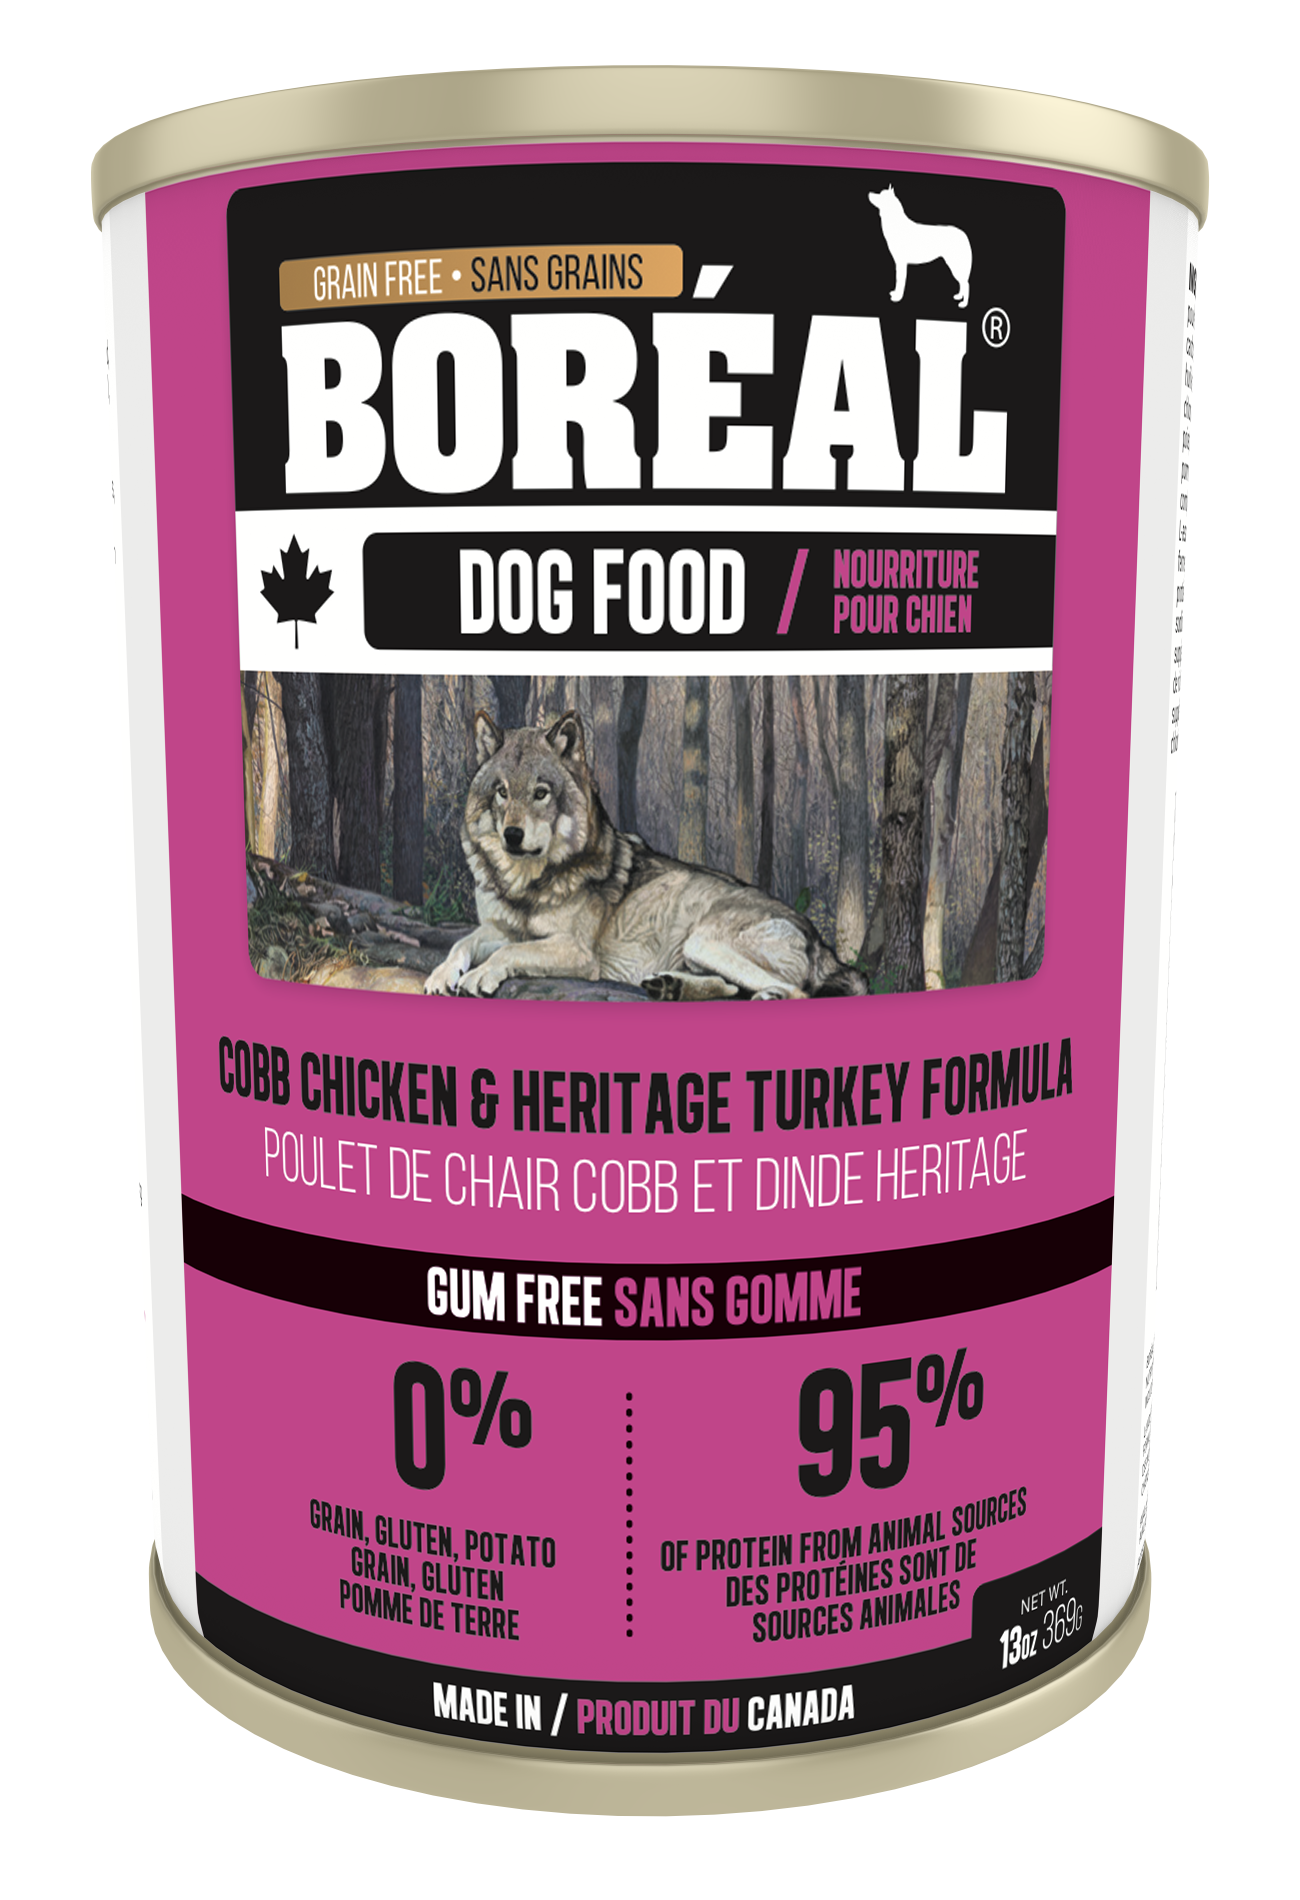 Boreal Grain-Free Canadian Cobb Chicken and Heritage Turkey Canned Dog Food, 369g can